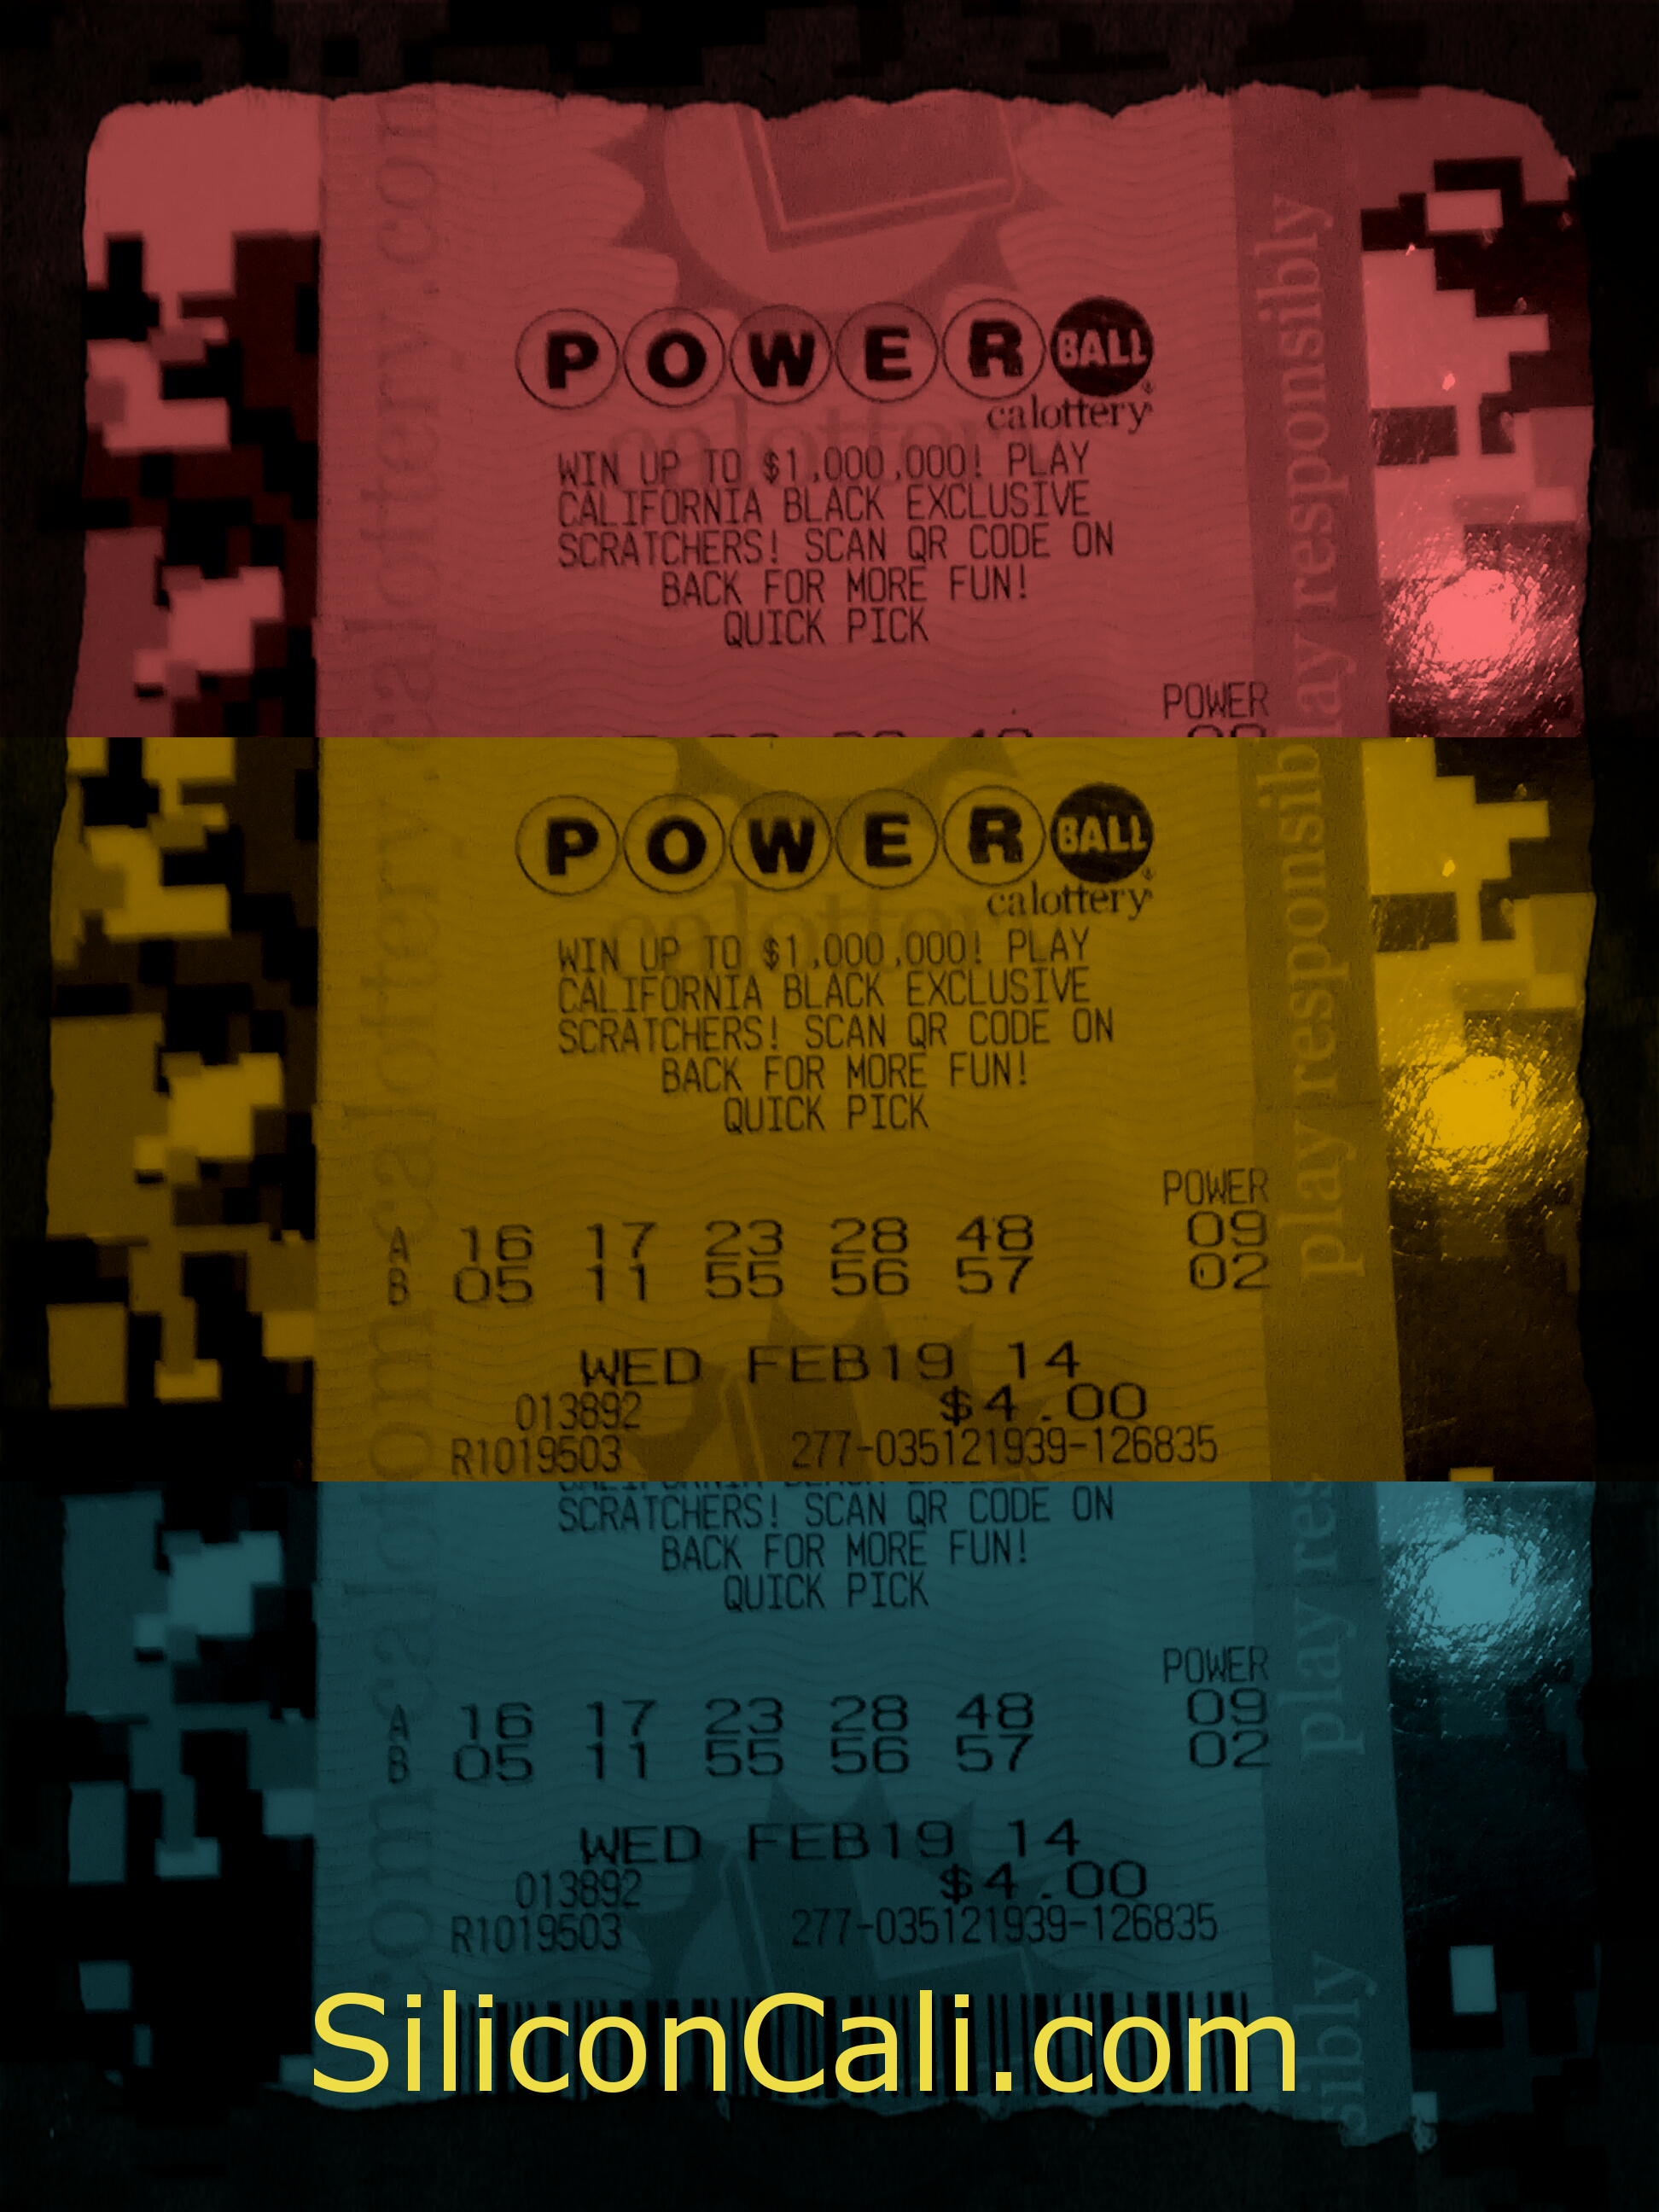 powerball cali photo - 1